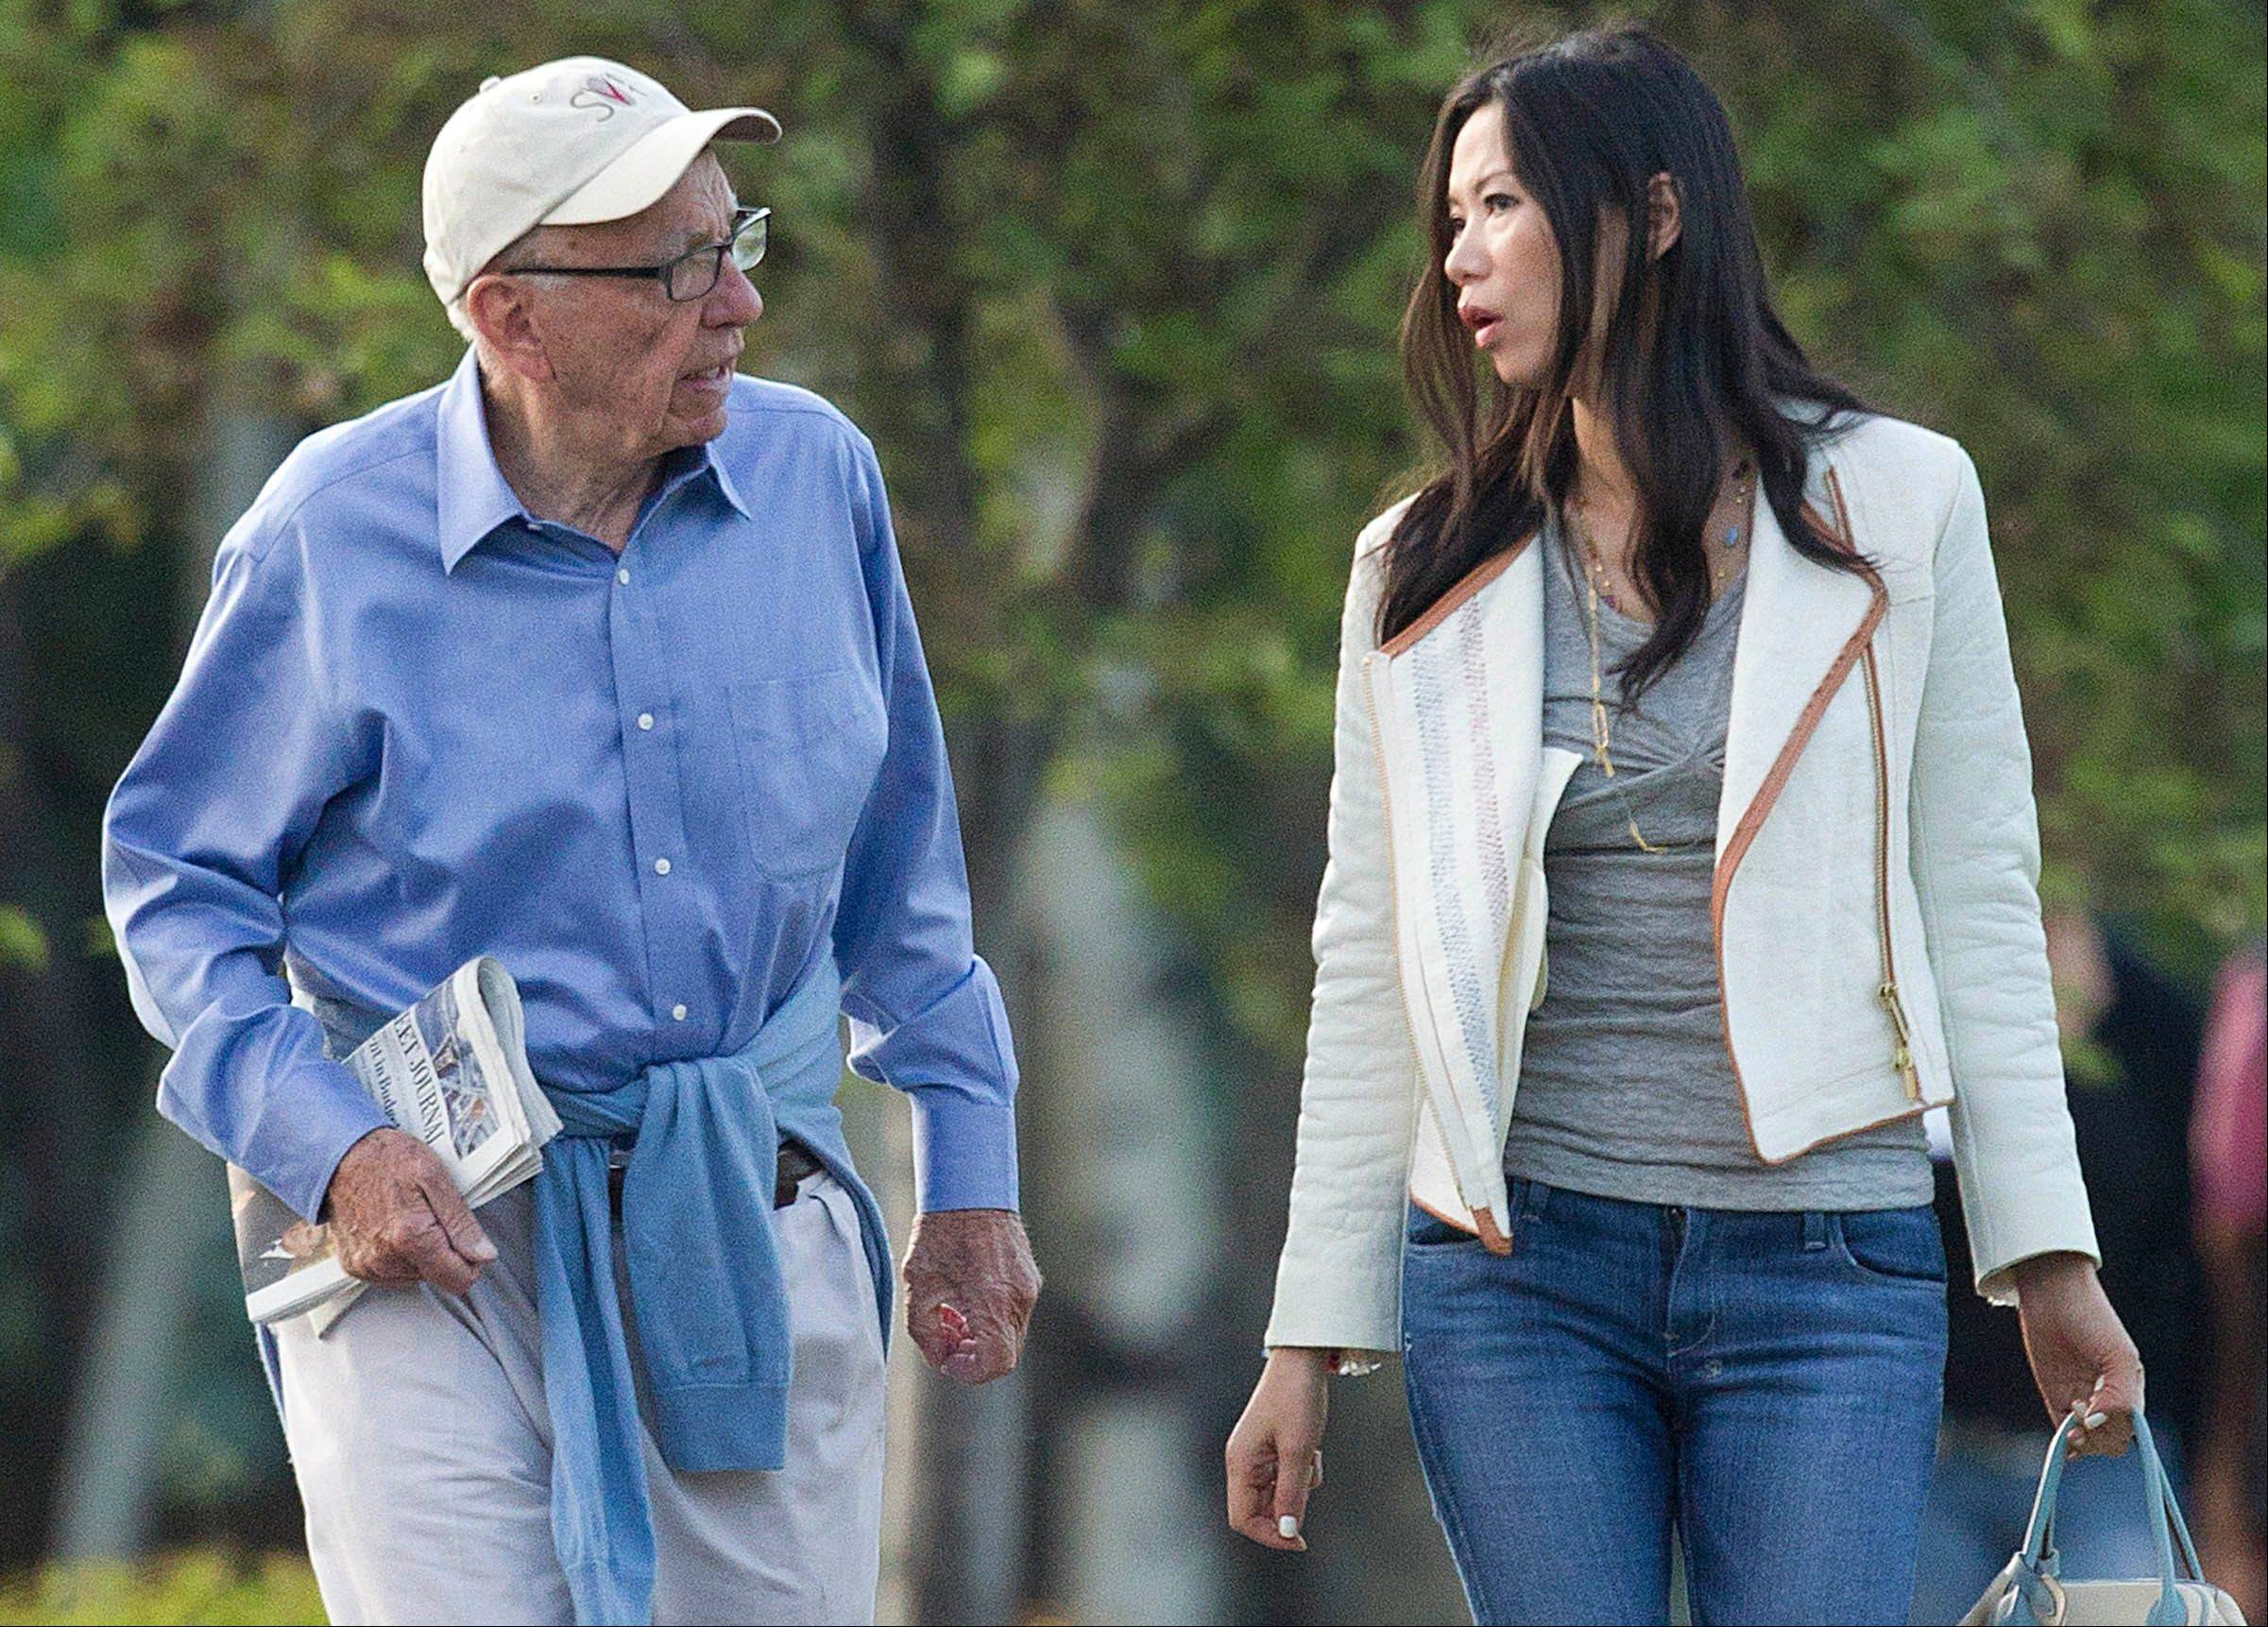 Rupert Murdoch and Wendi Murdoch are seen in Sun Valley, Idaho, Thursday. A Rupert Murdoch-owned tabloid in London was found to have hacked into the phone messages of a teenage murder victim and was suspected of possibly targeting the relatives of slain soldiers in its quest to produce attention-grabbing headlines.